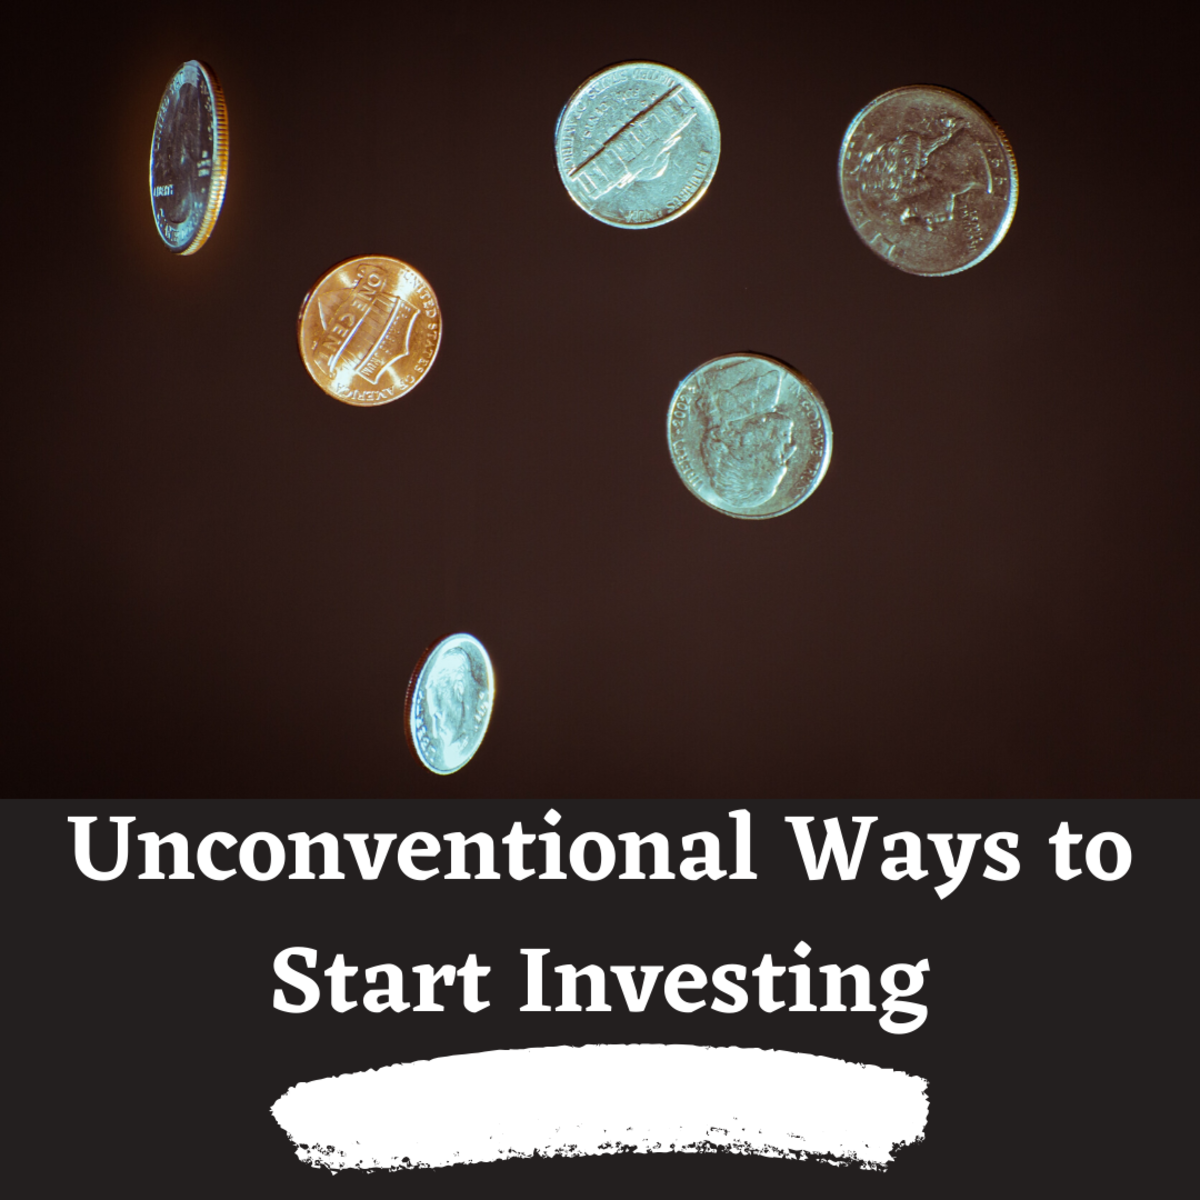 Read on to see if these unconventional methods for investing are right for you.